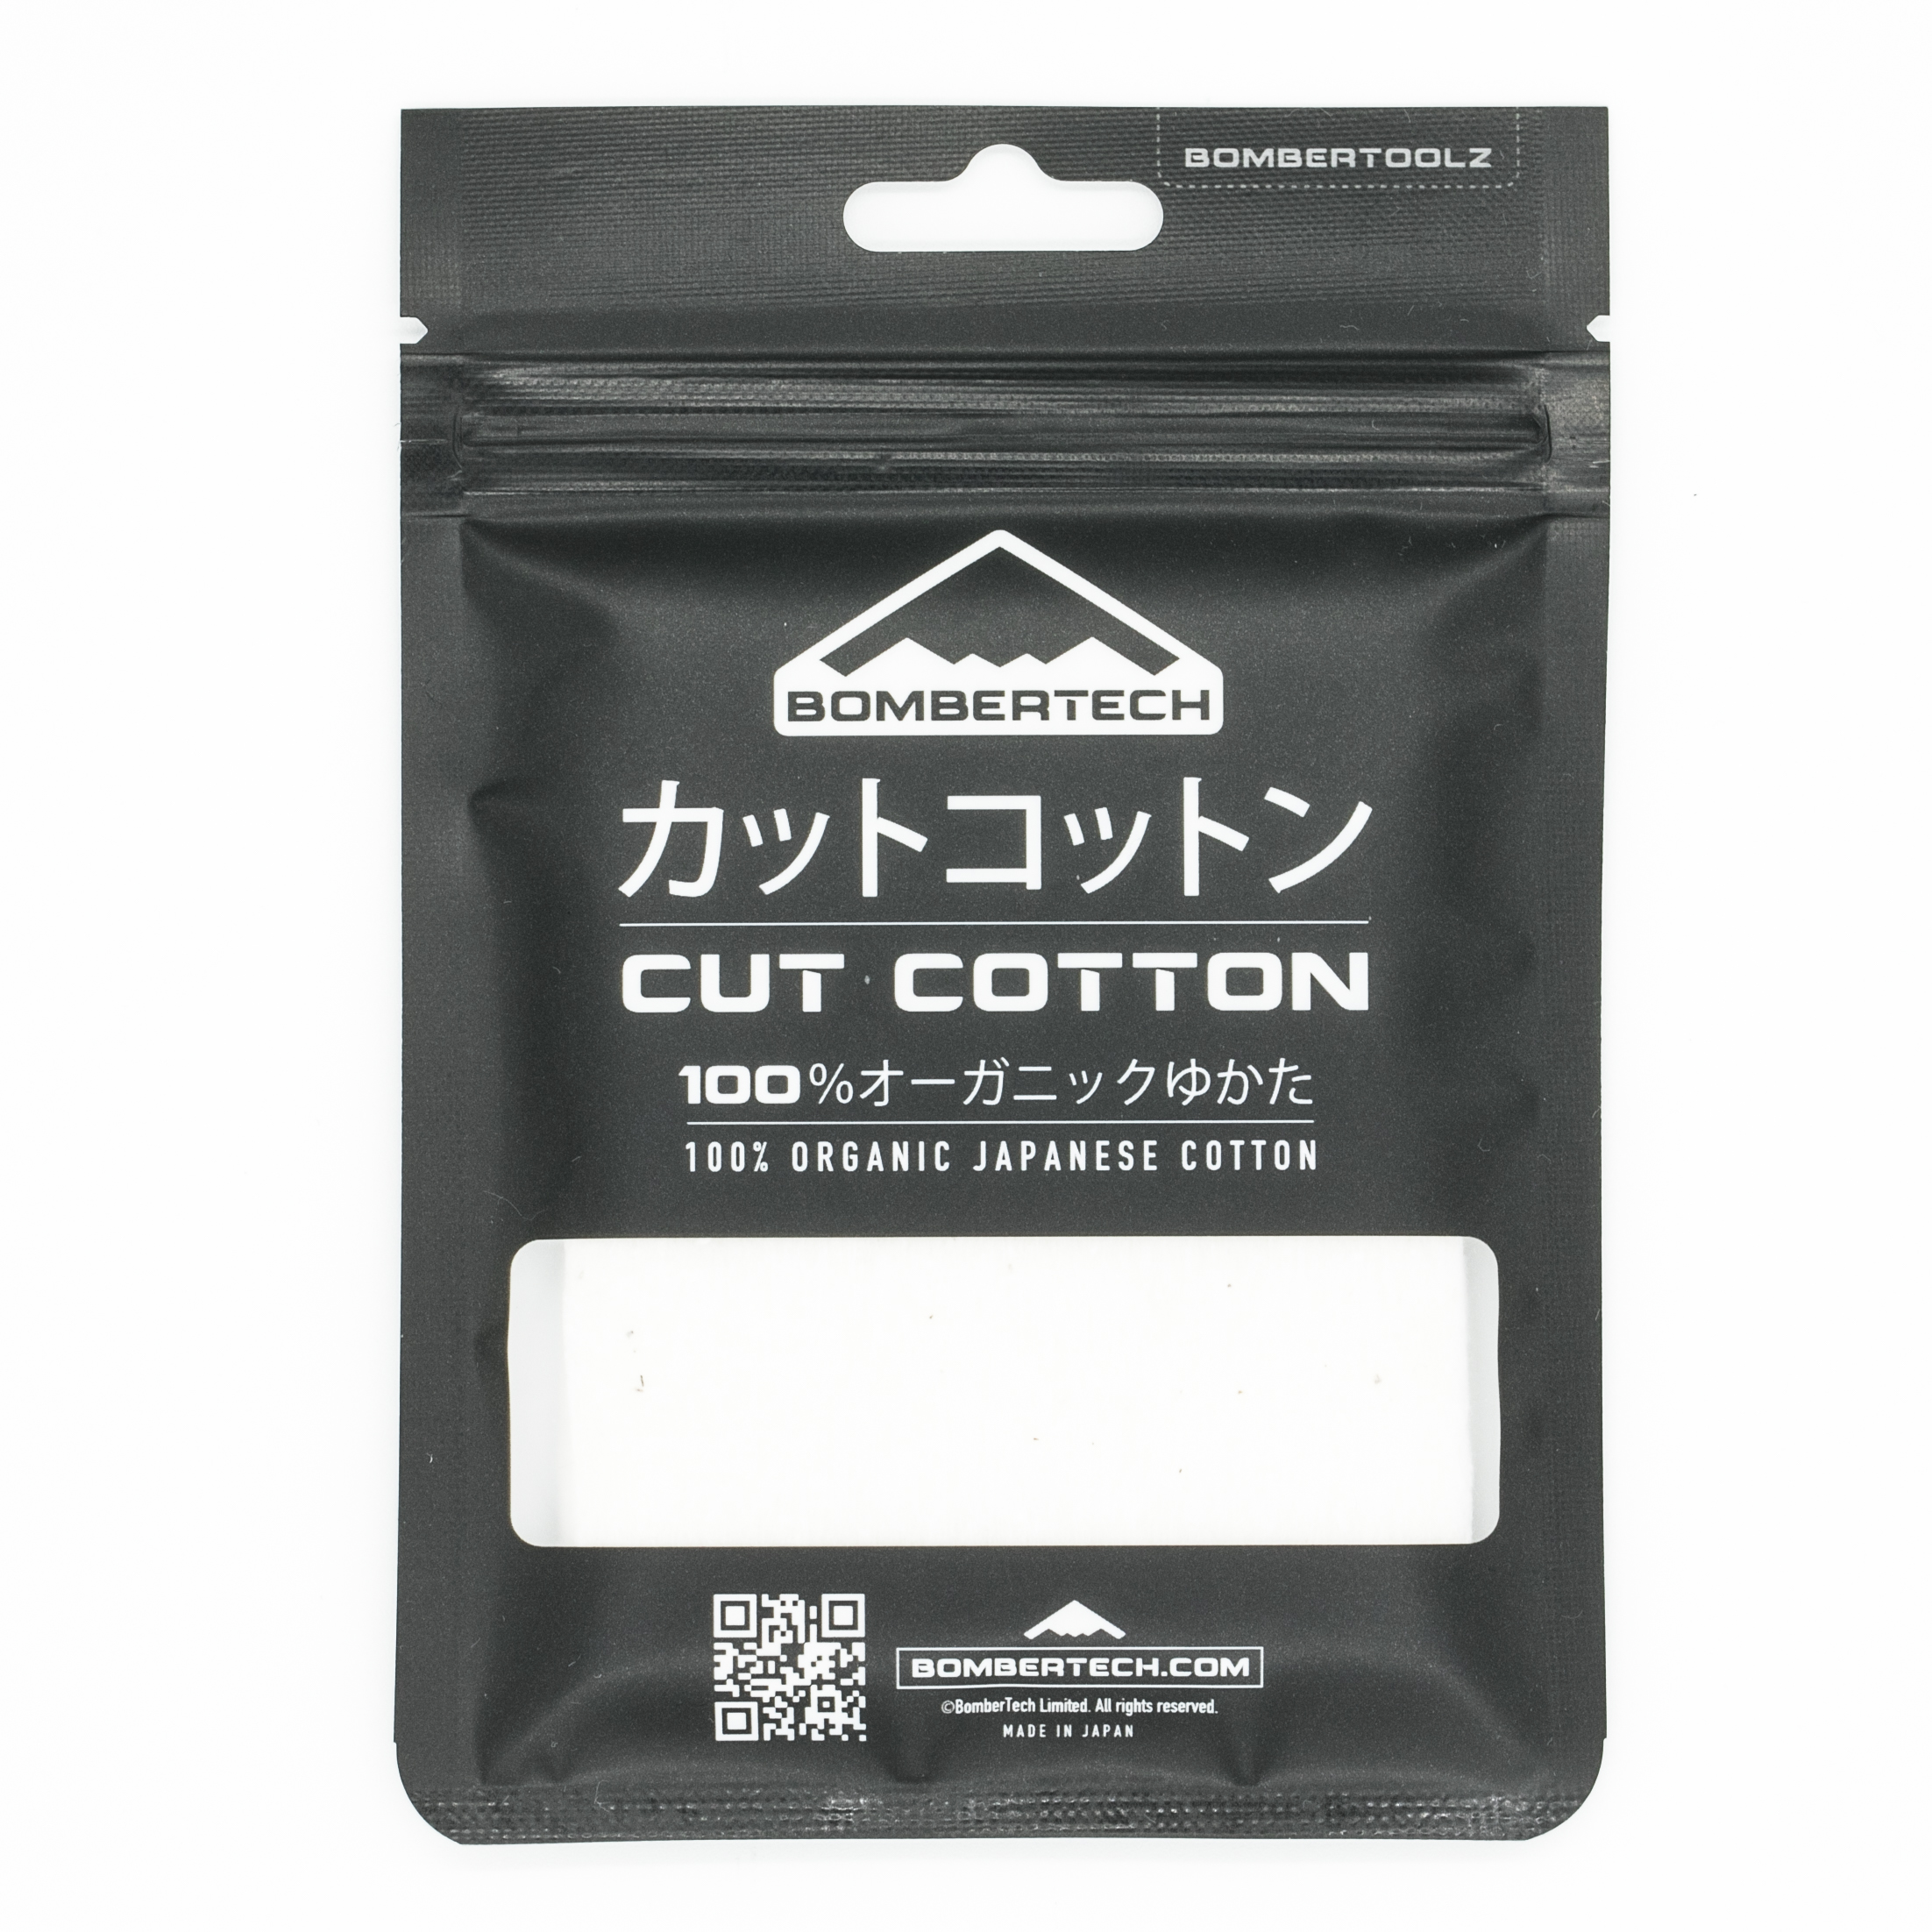 BomberTech Cut Cotton Japanese Organic Cotton